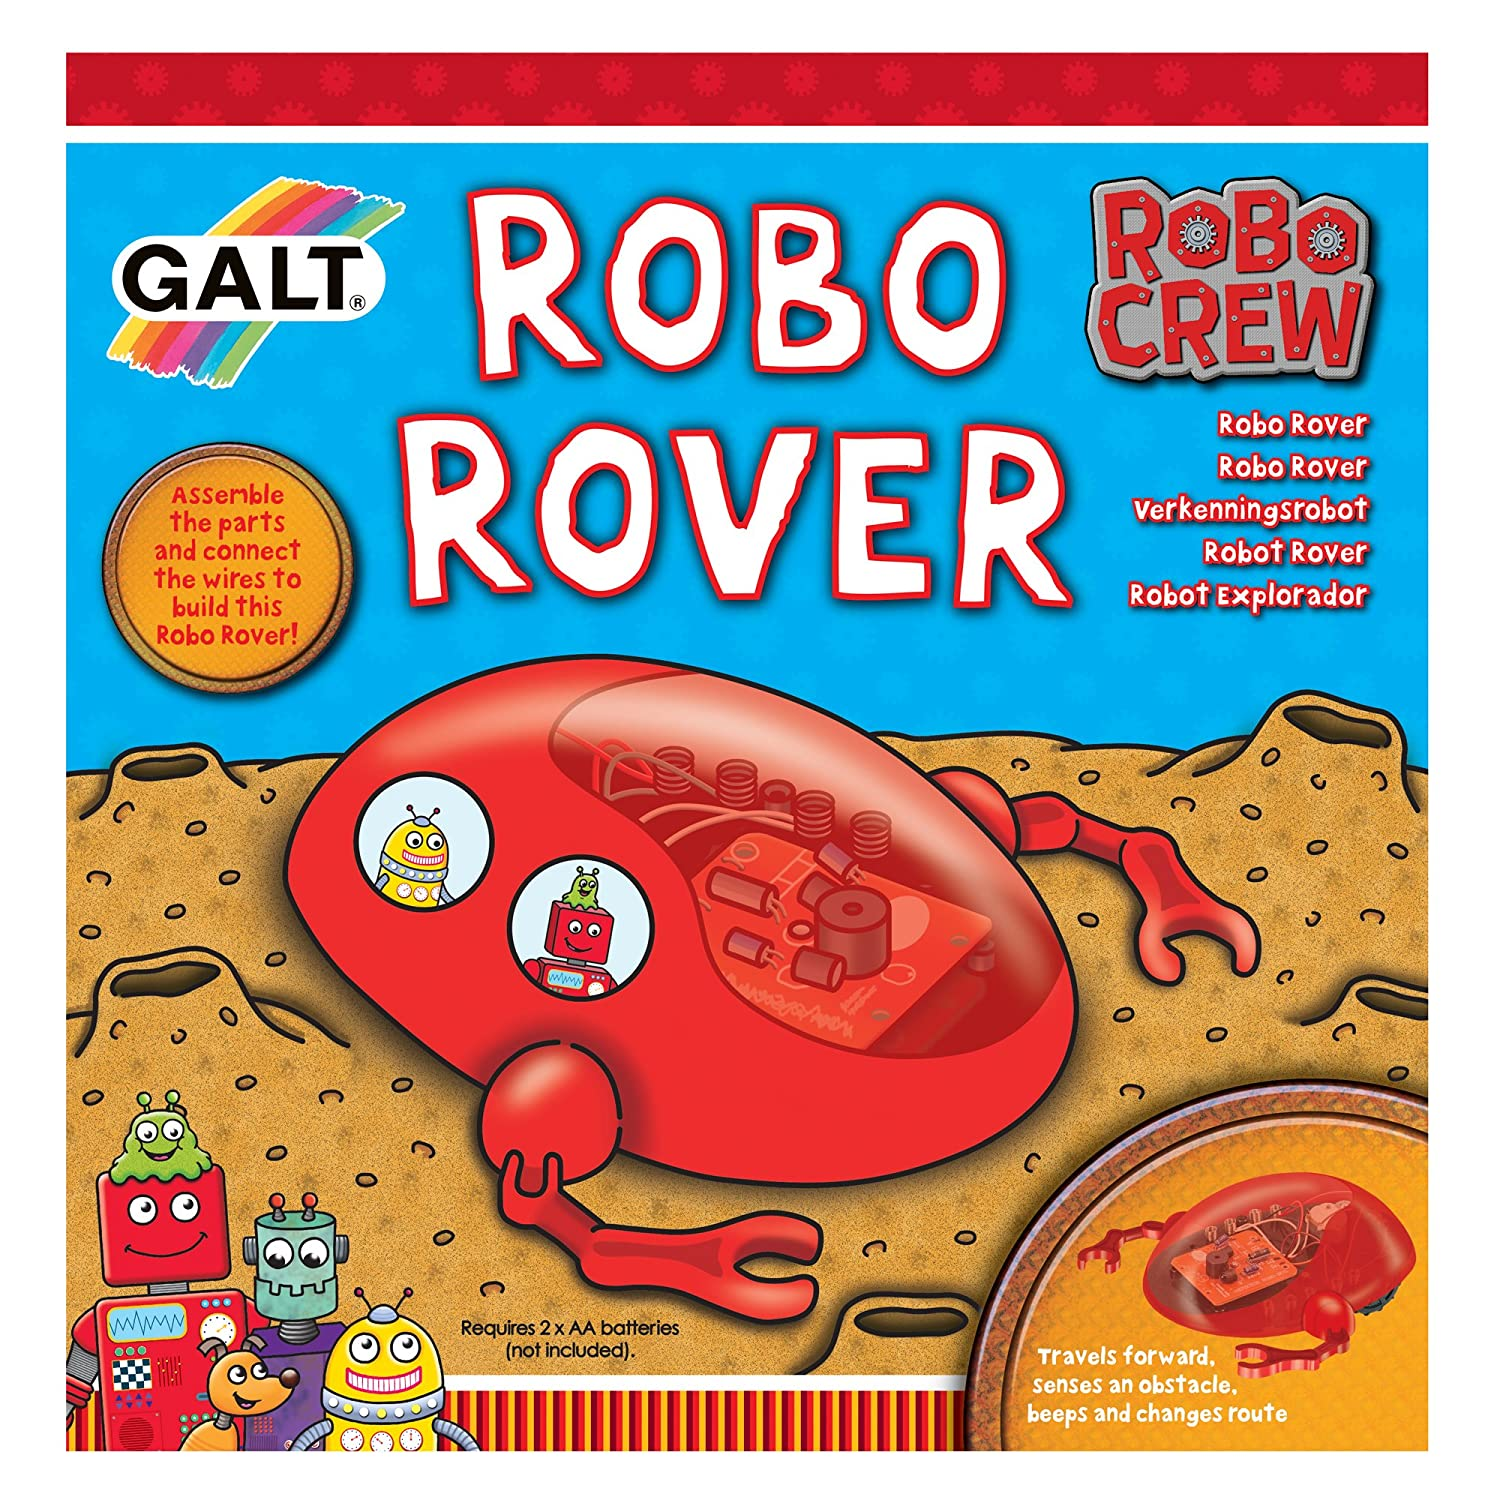 Galt Toys Robo Rover Games 25 Central Locking Wiring Diagram